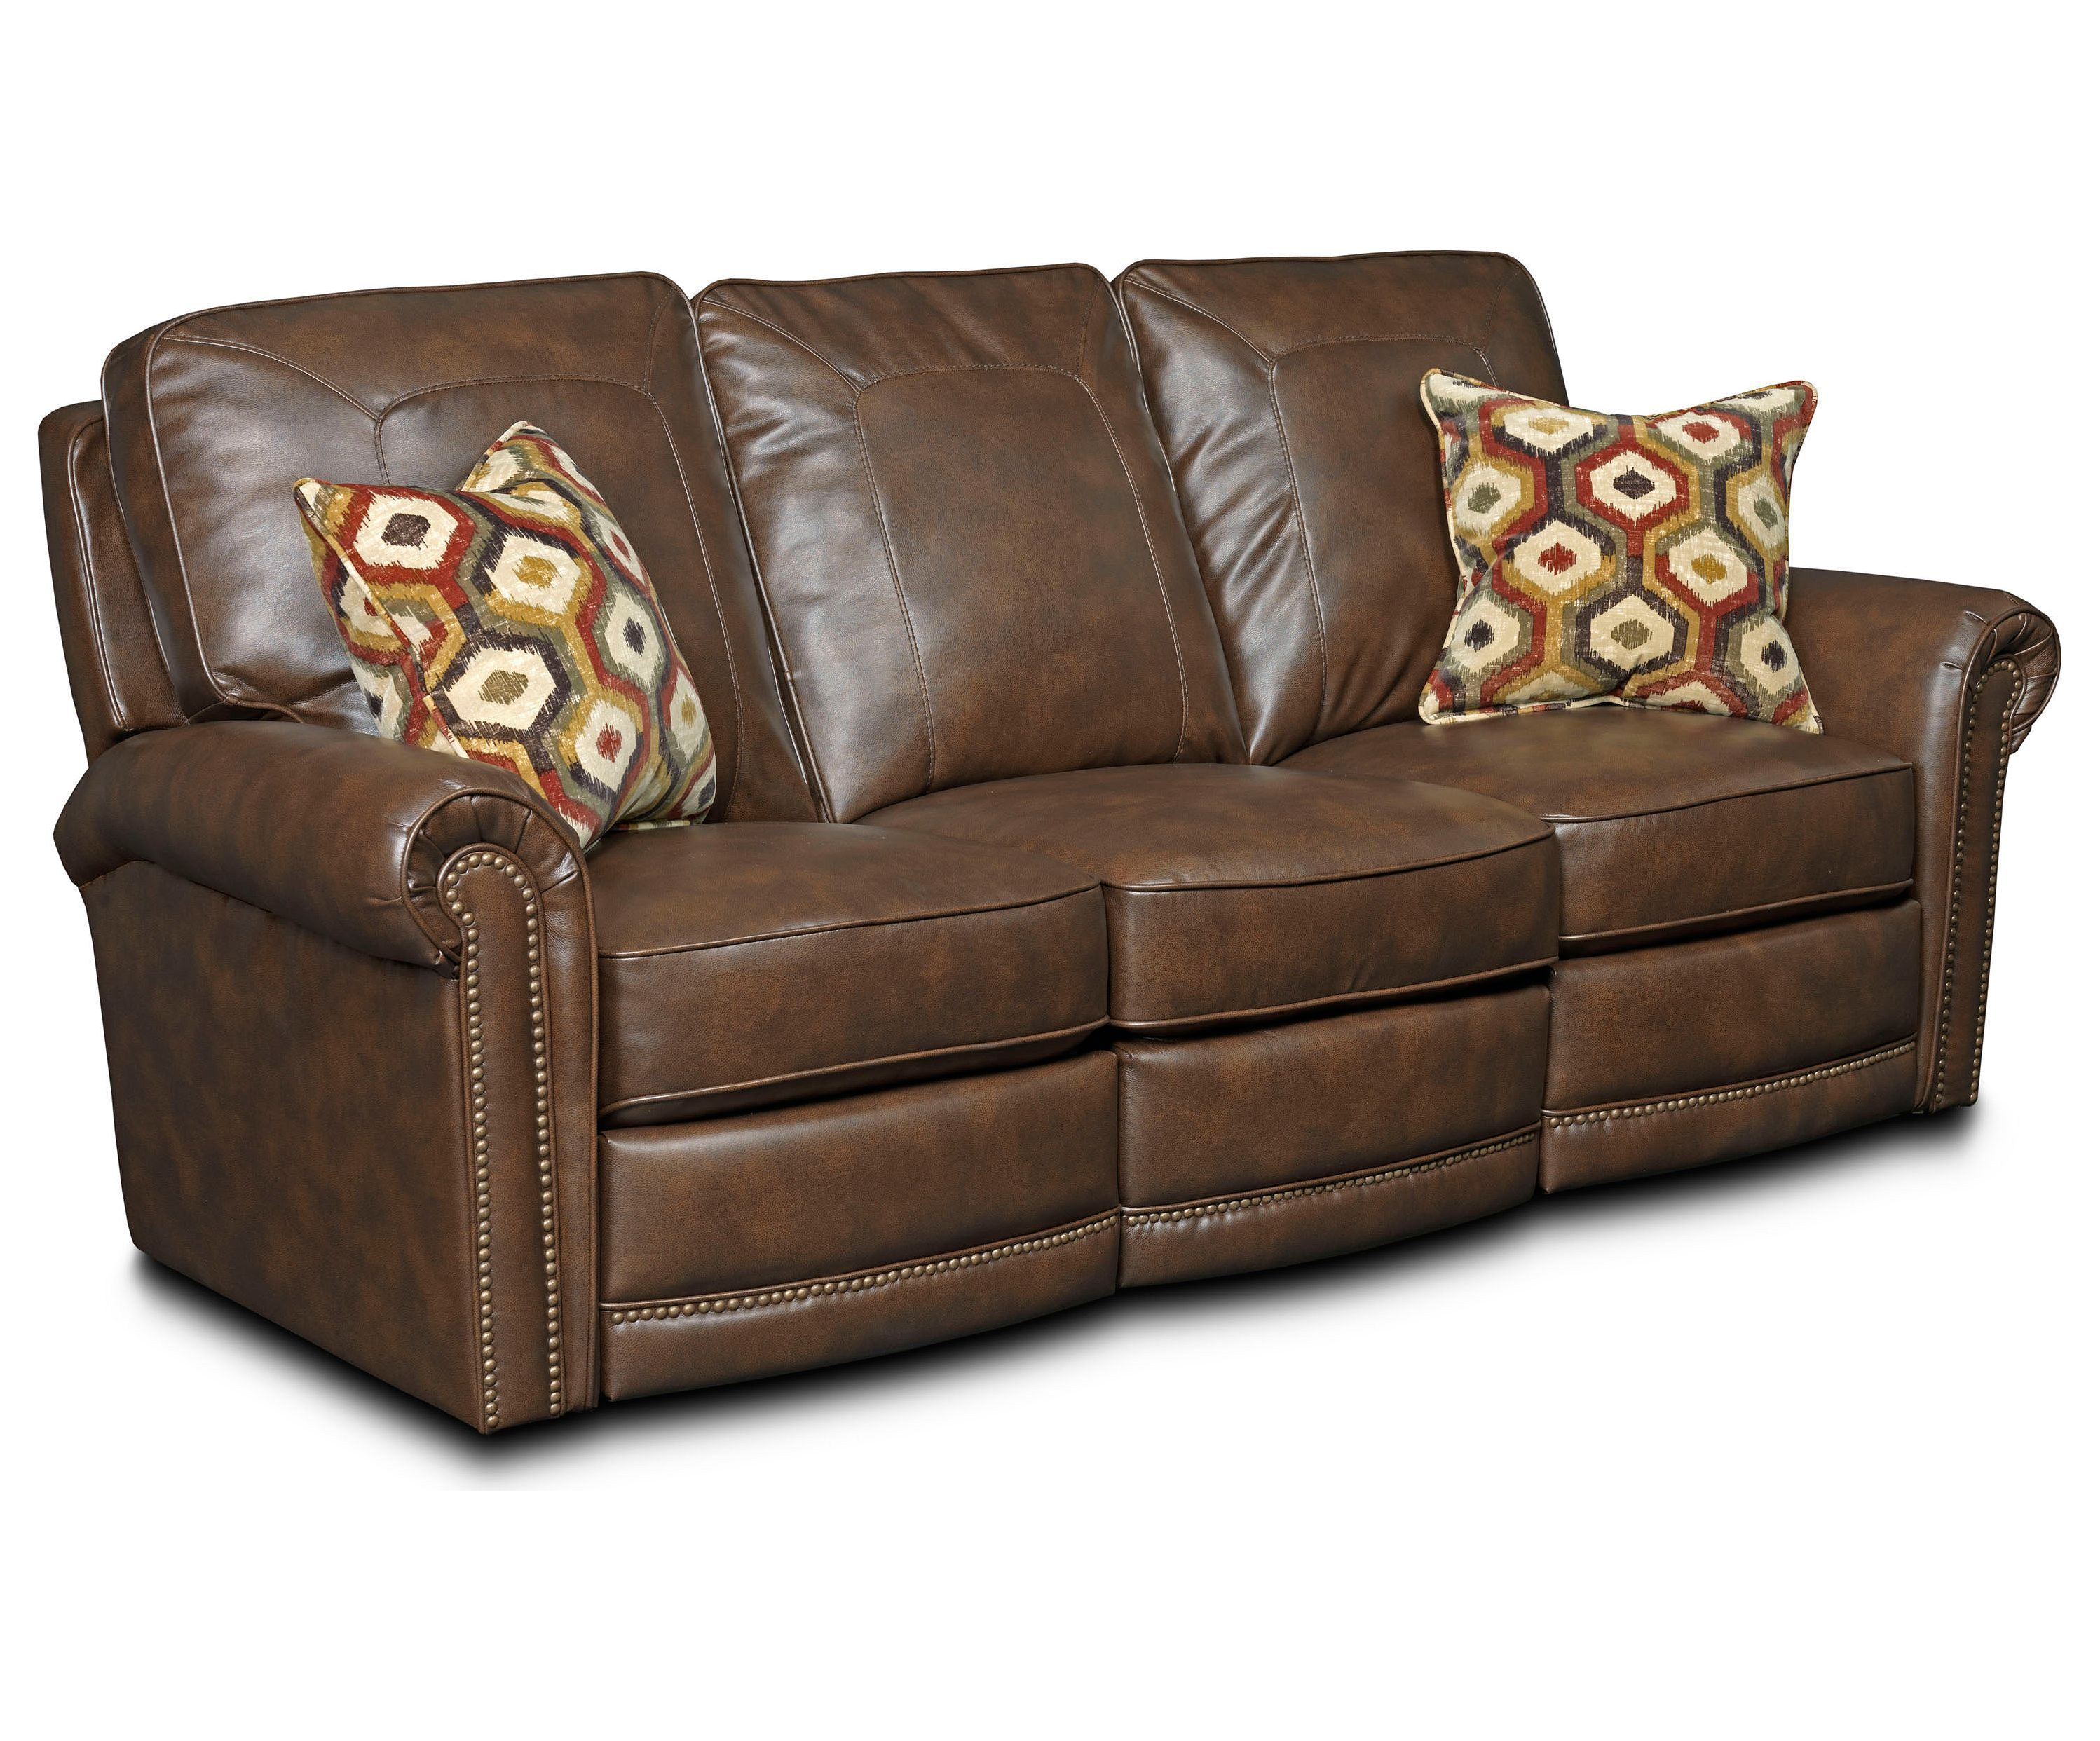 Kingsway Power Leather Reclining Sofa by e80 from Value City